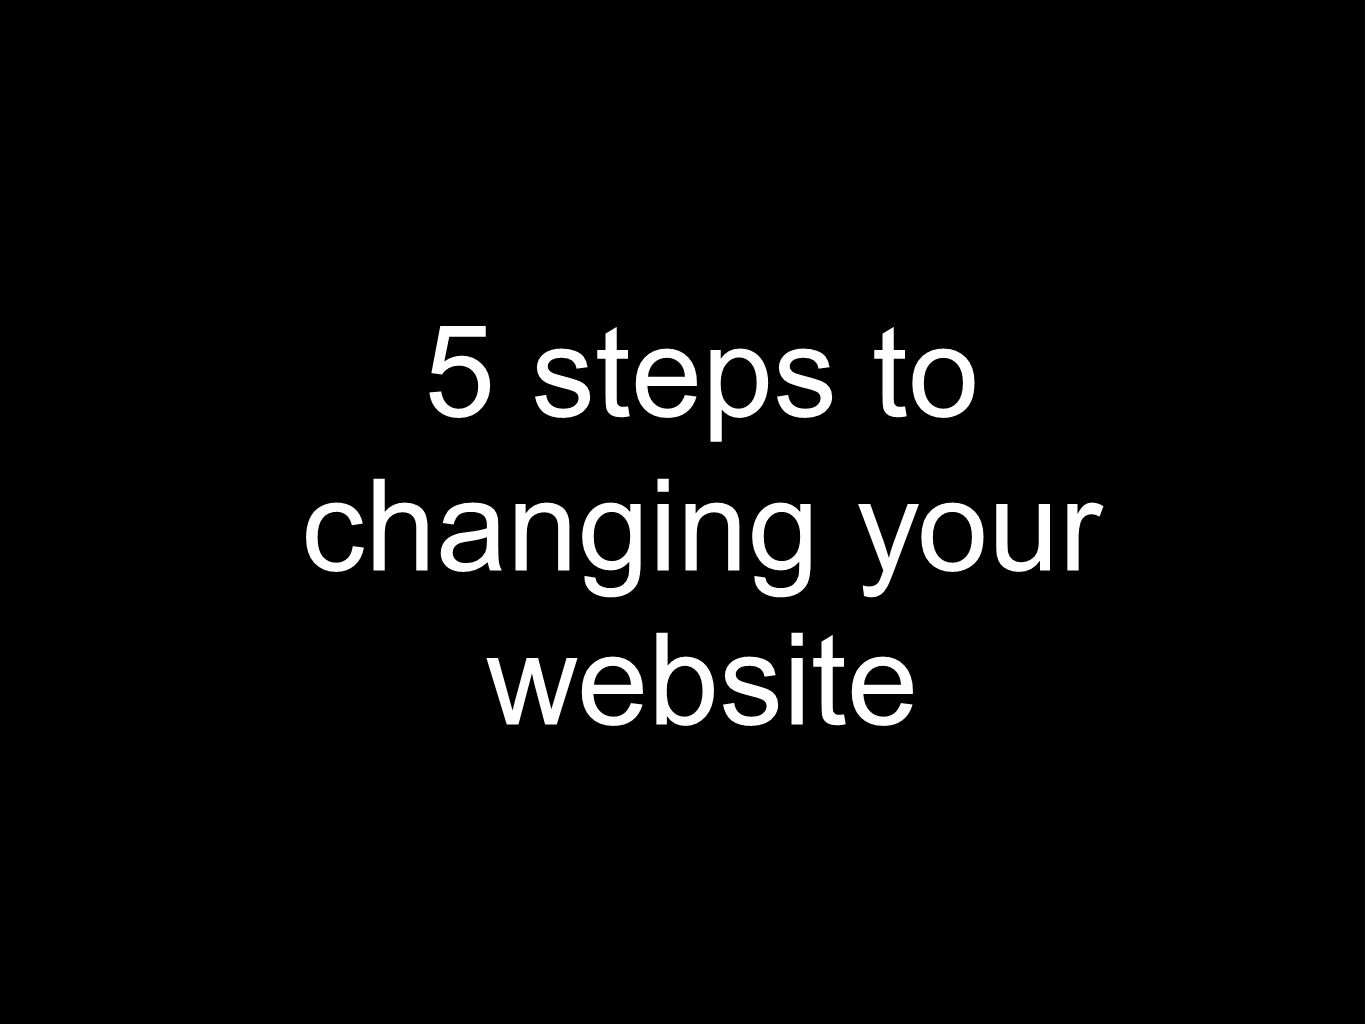 5 steps to changing your website